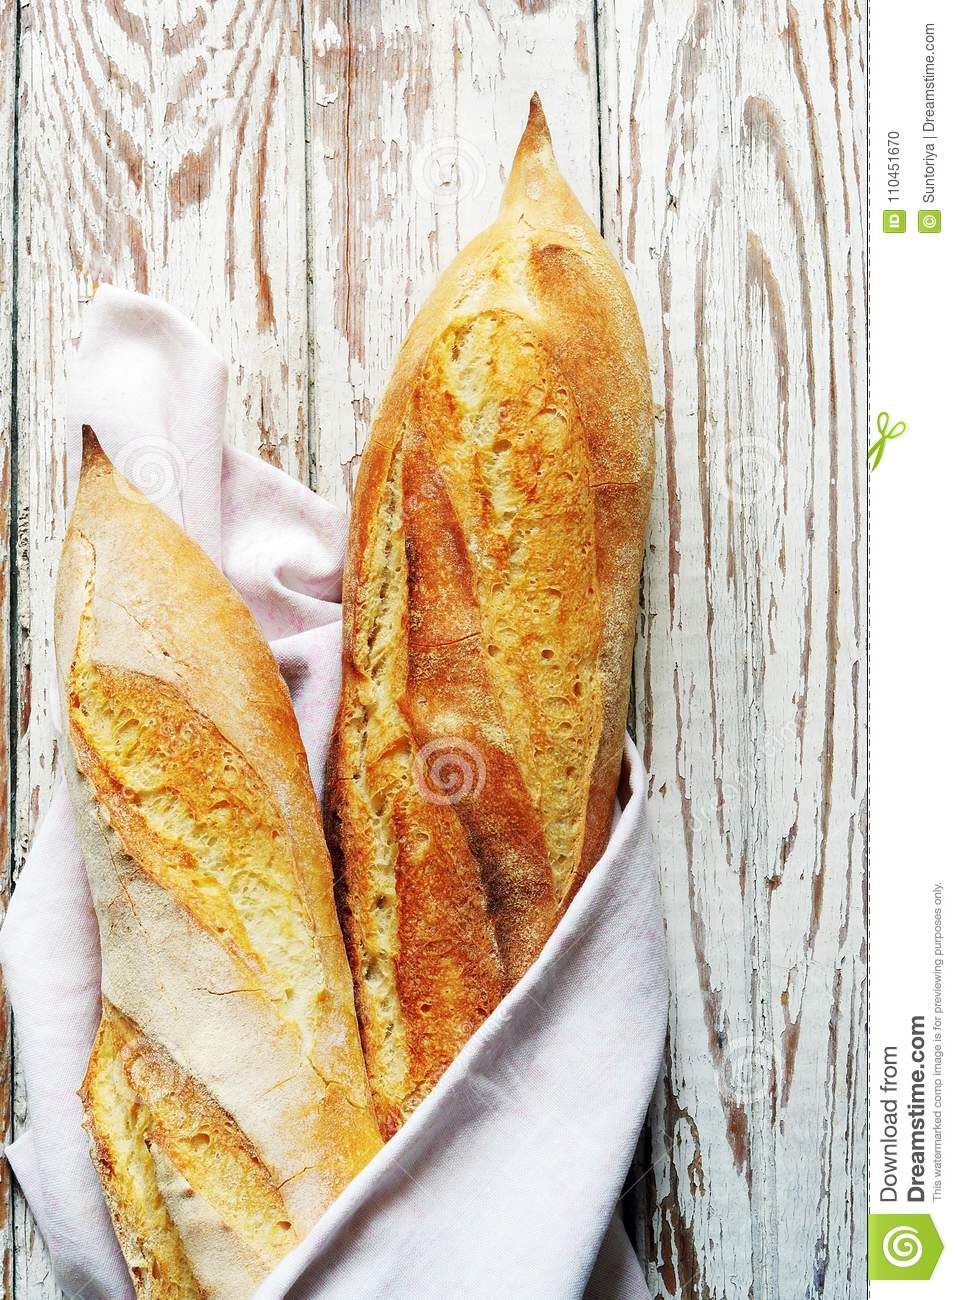 Freshly French baguette with ruddy crispy crust on a light background